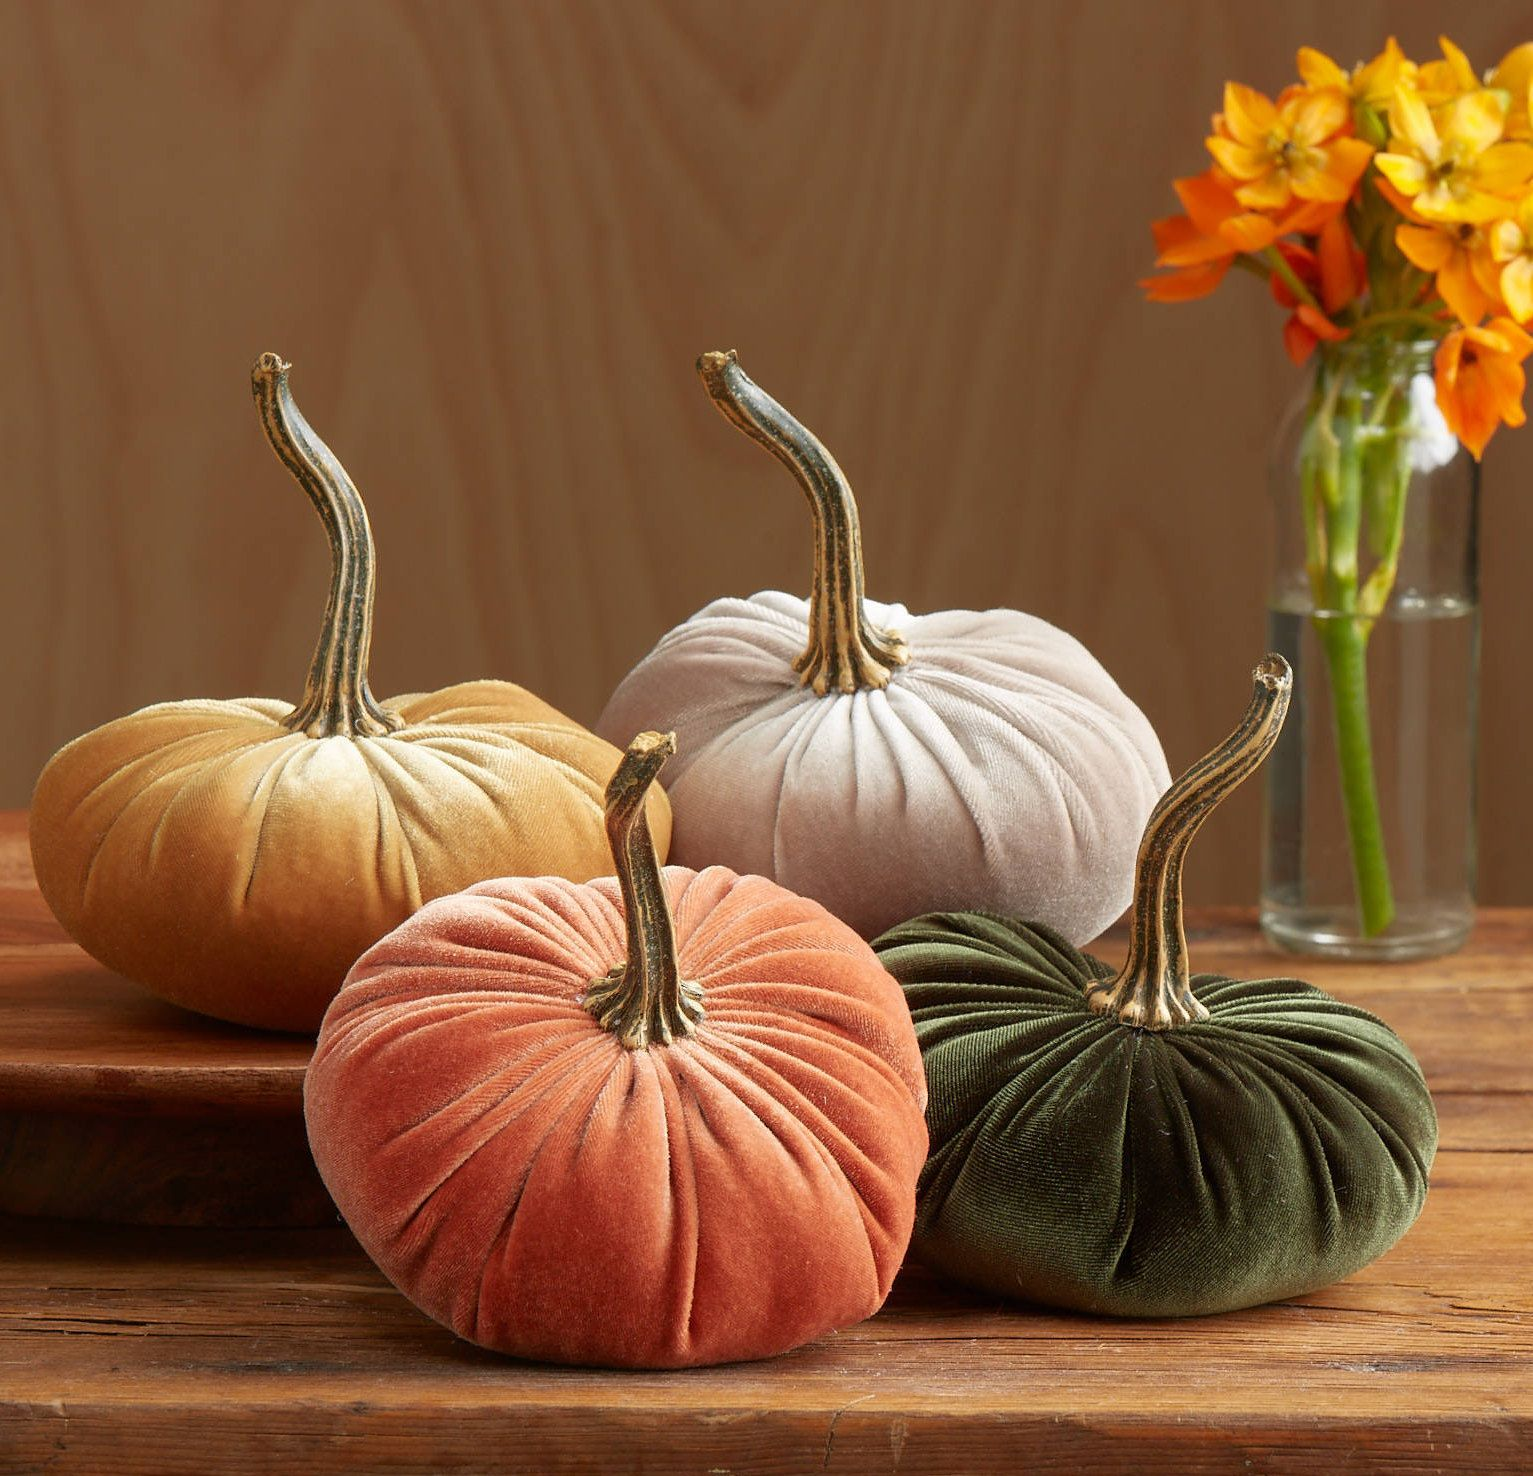 Small Velvet Pumpkins Set Of 4 Fall Wedding Centerpiece Etsy Velvet Pumpkins Pumpkin Centerpieces Rustic Modern Wedding